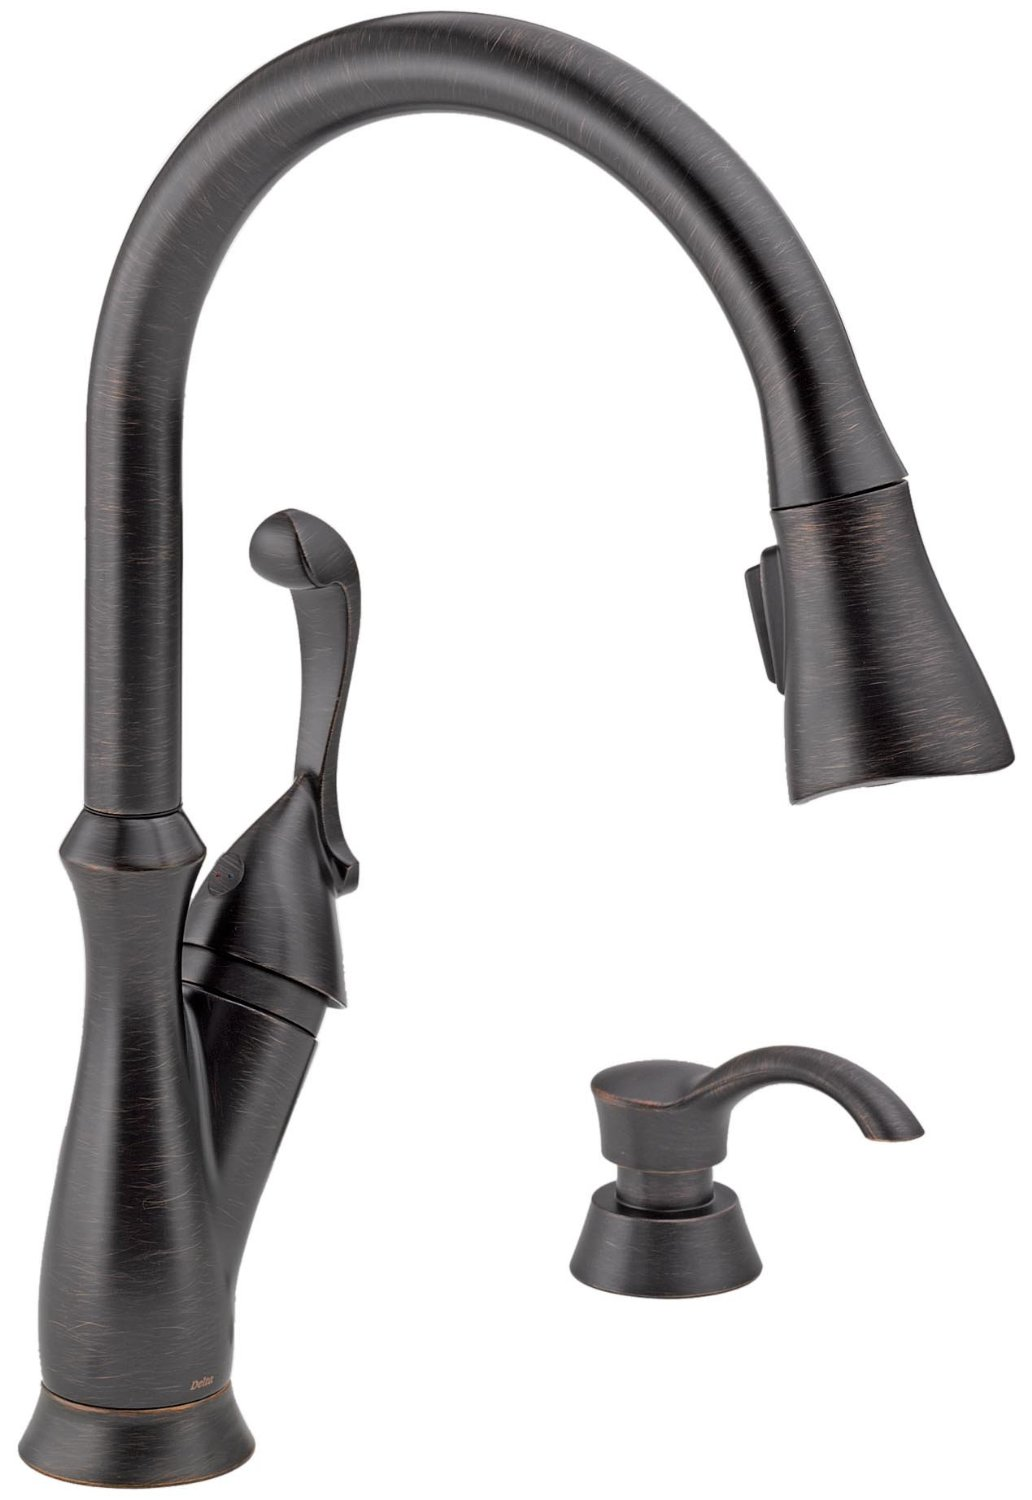 delta faucet with soap dispenser | kitchen faucets hub